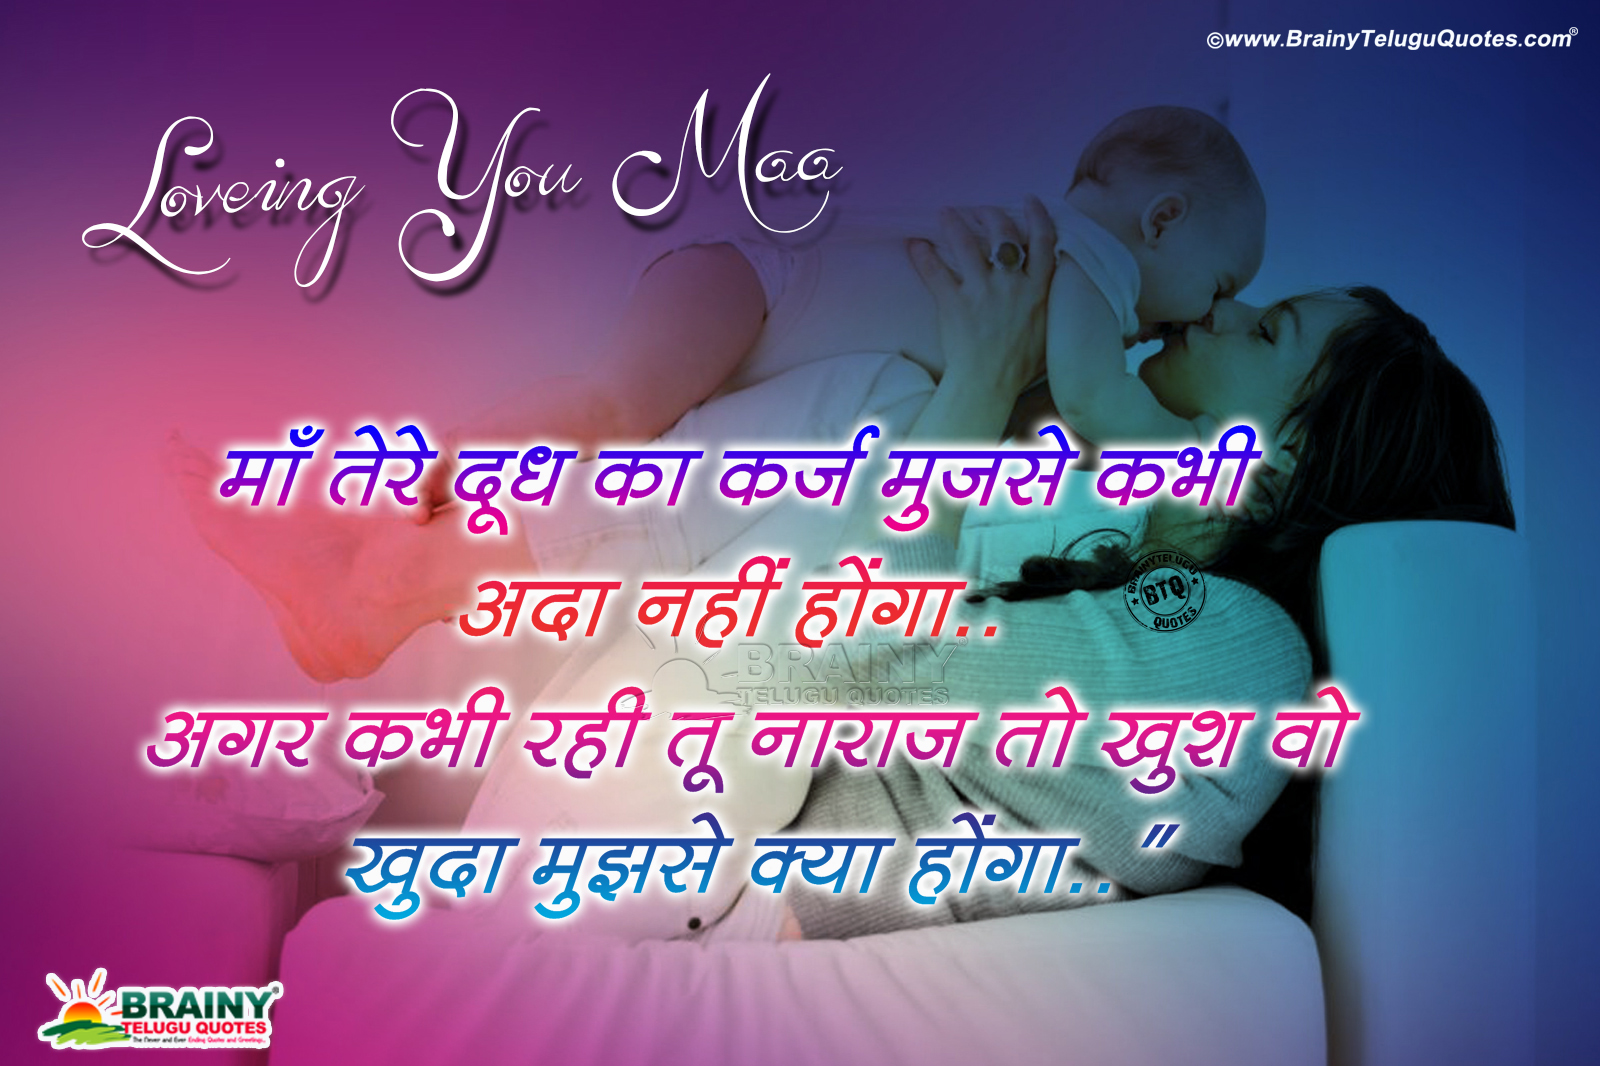 Mother And Son Quotes In Hindi: Mother Shayari In Hindi-Best Hindi Mother Loving Quotes Hd